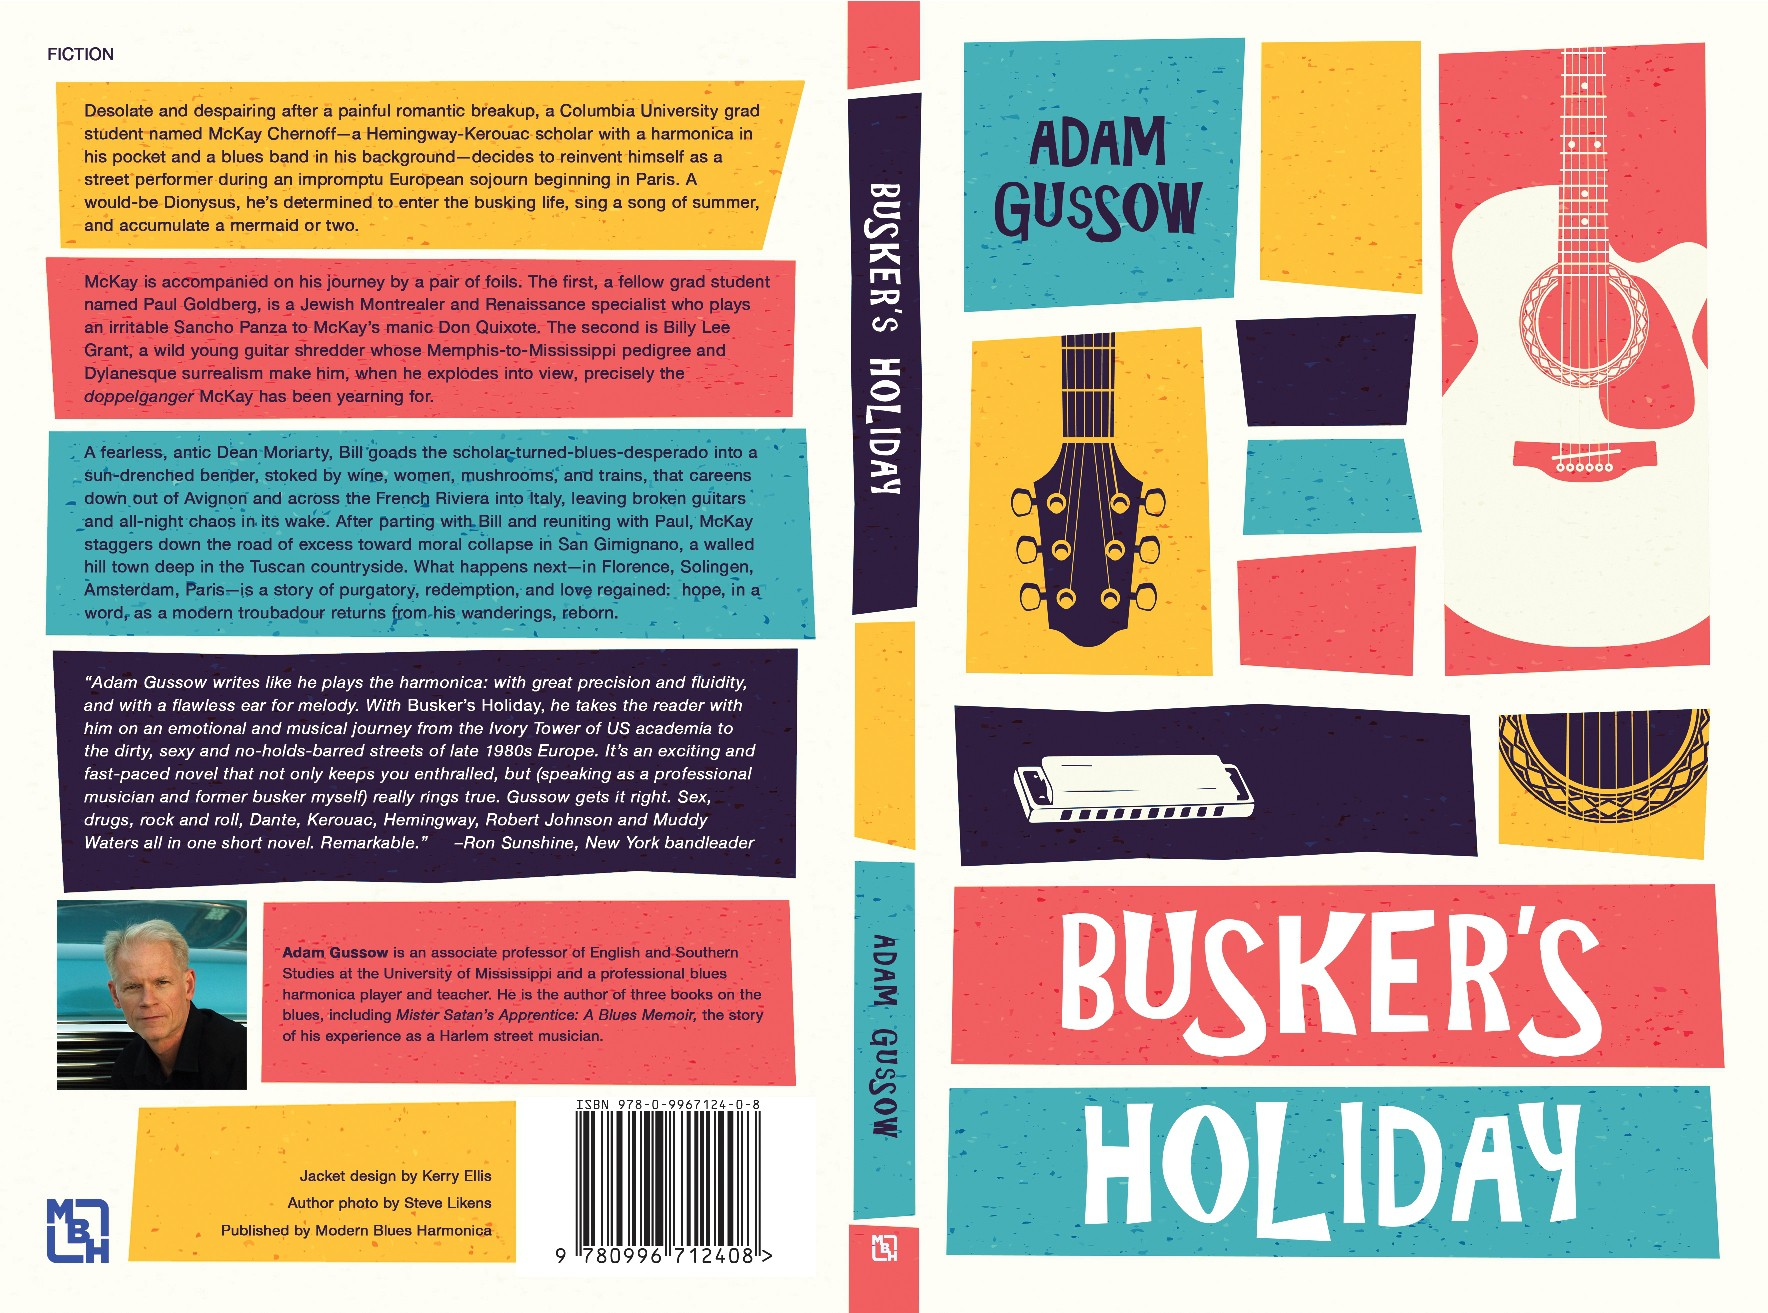 finishing up Busker's Holiday cover